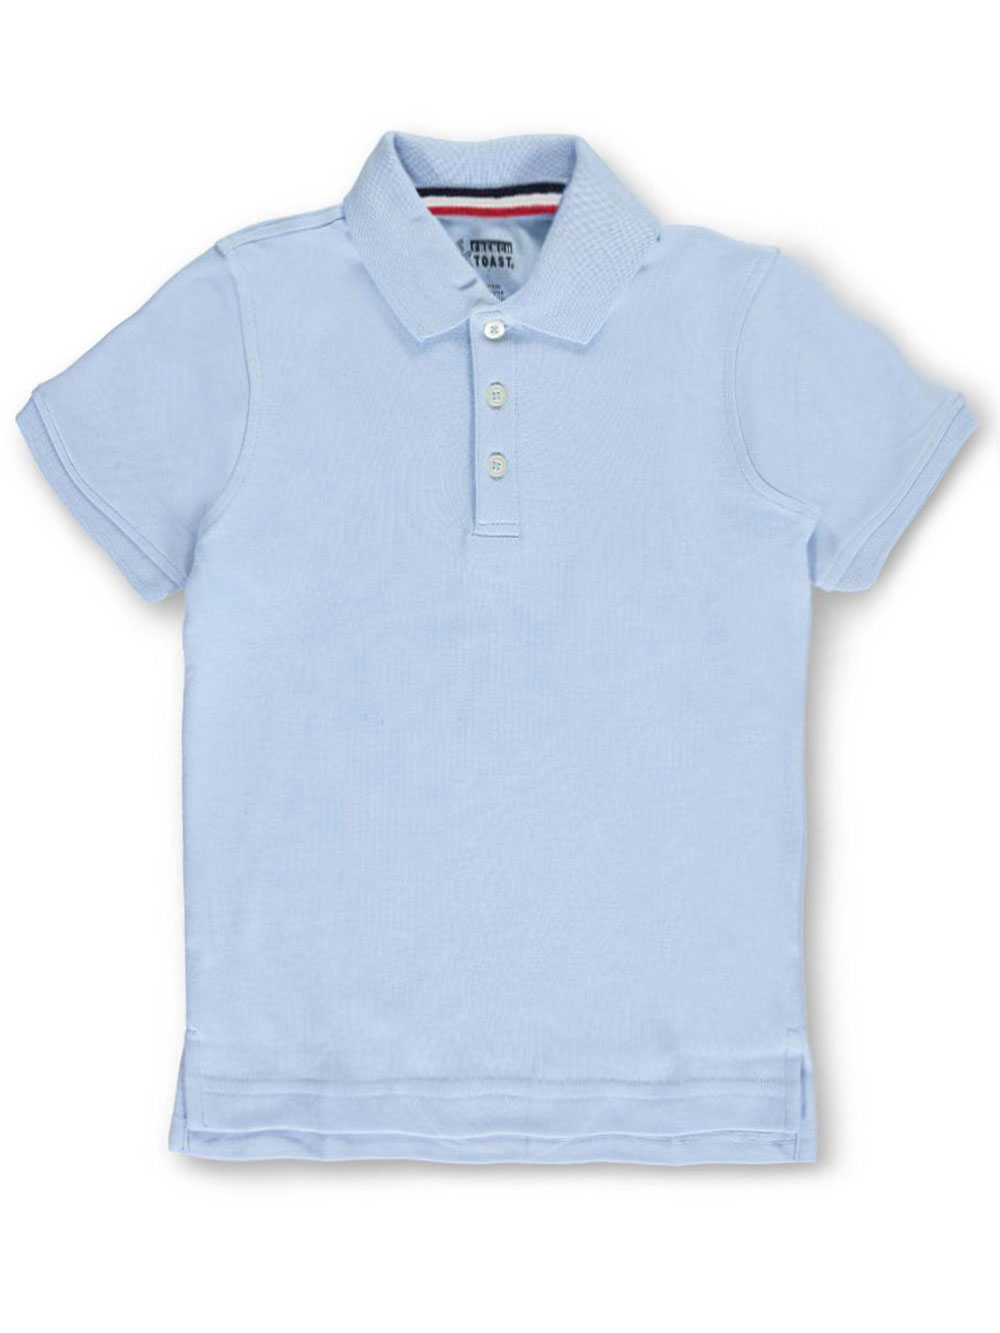 Size 8 Knit Polos for Boys